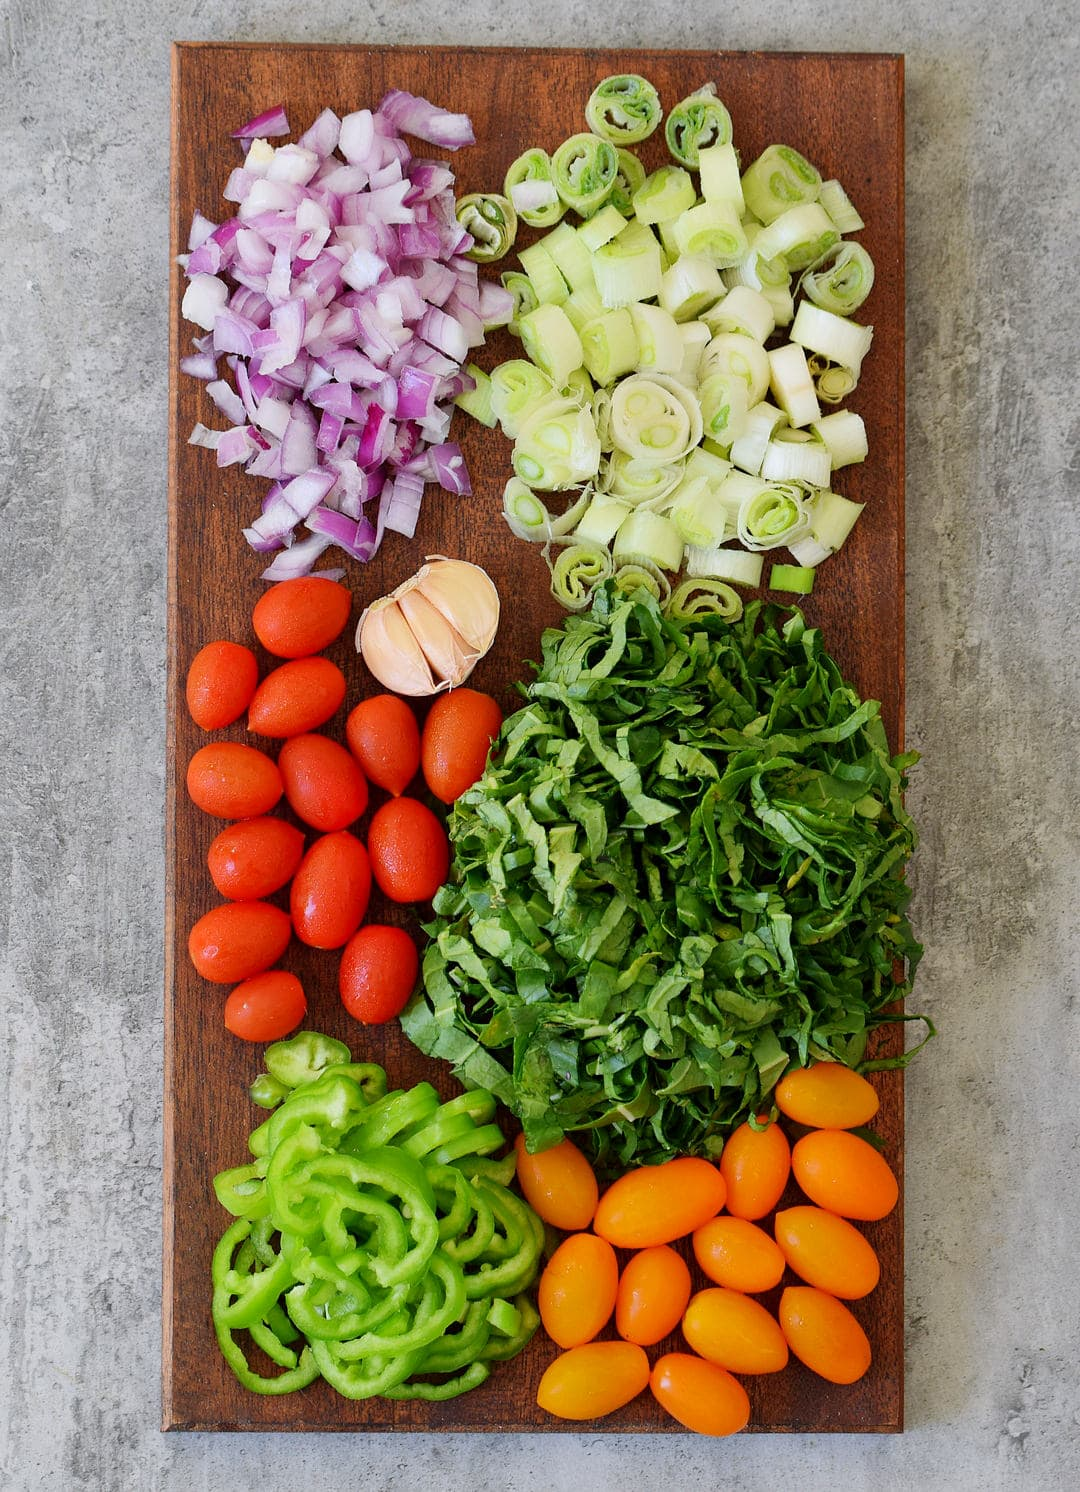 raw veggies like onion, cherry tomatoes, leeks, spinach, peppers on a brown wooden board